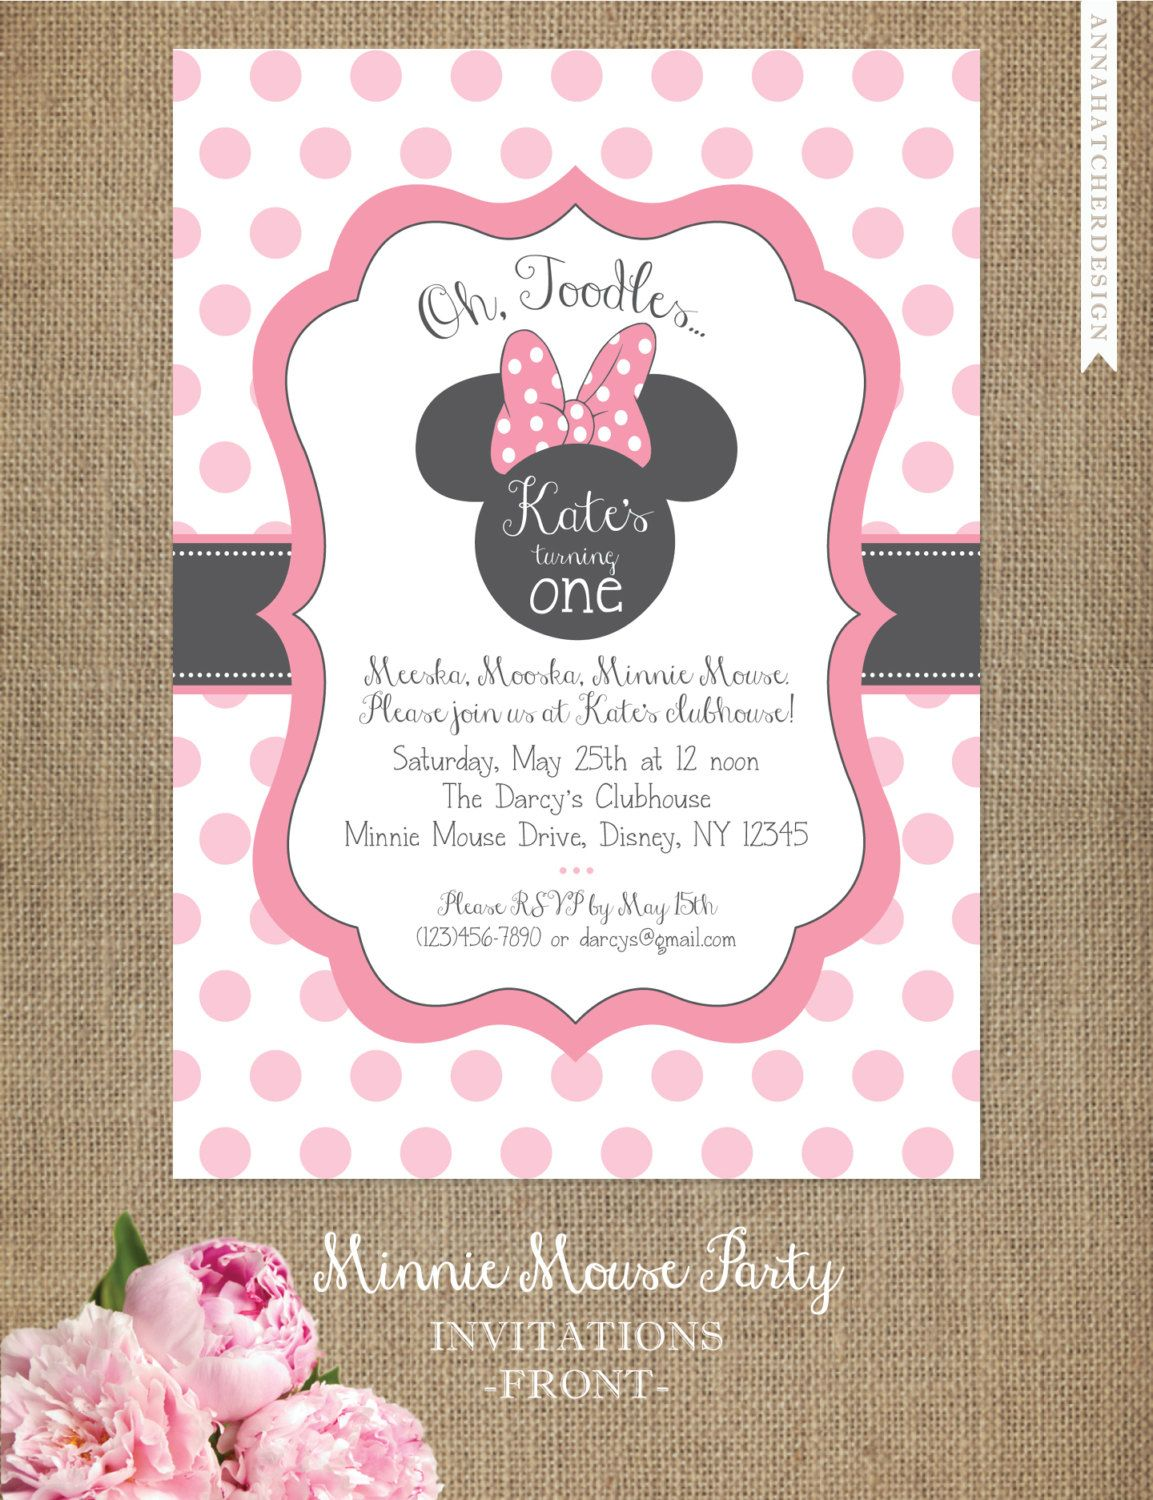 Minnie Mouse Invitation Editable Birthday Template Pink